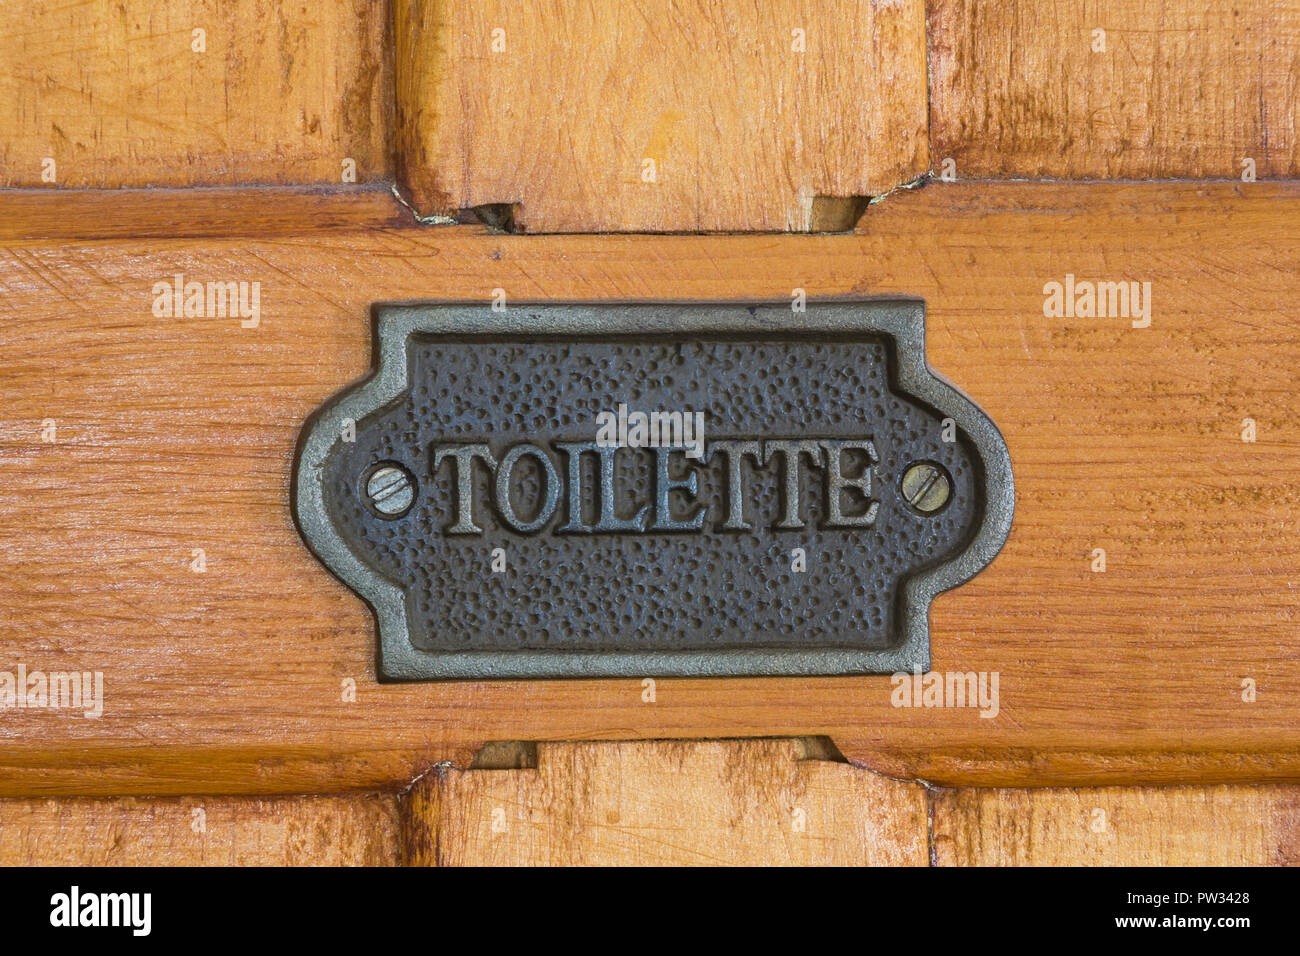 Close-up, metal sign with the inscription Toilette on wooden door, Canada - Stock Image